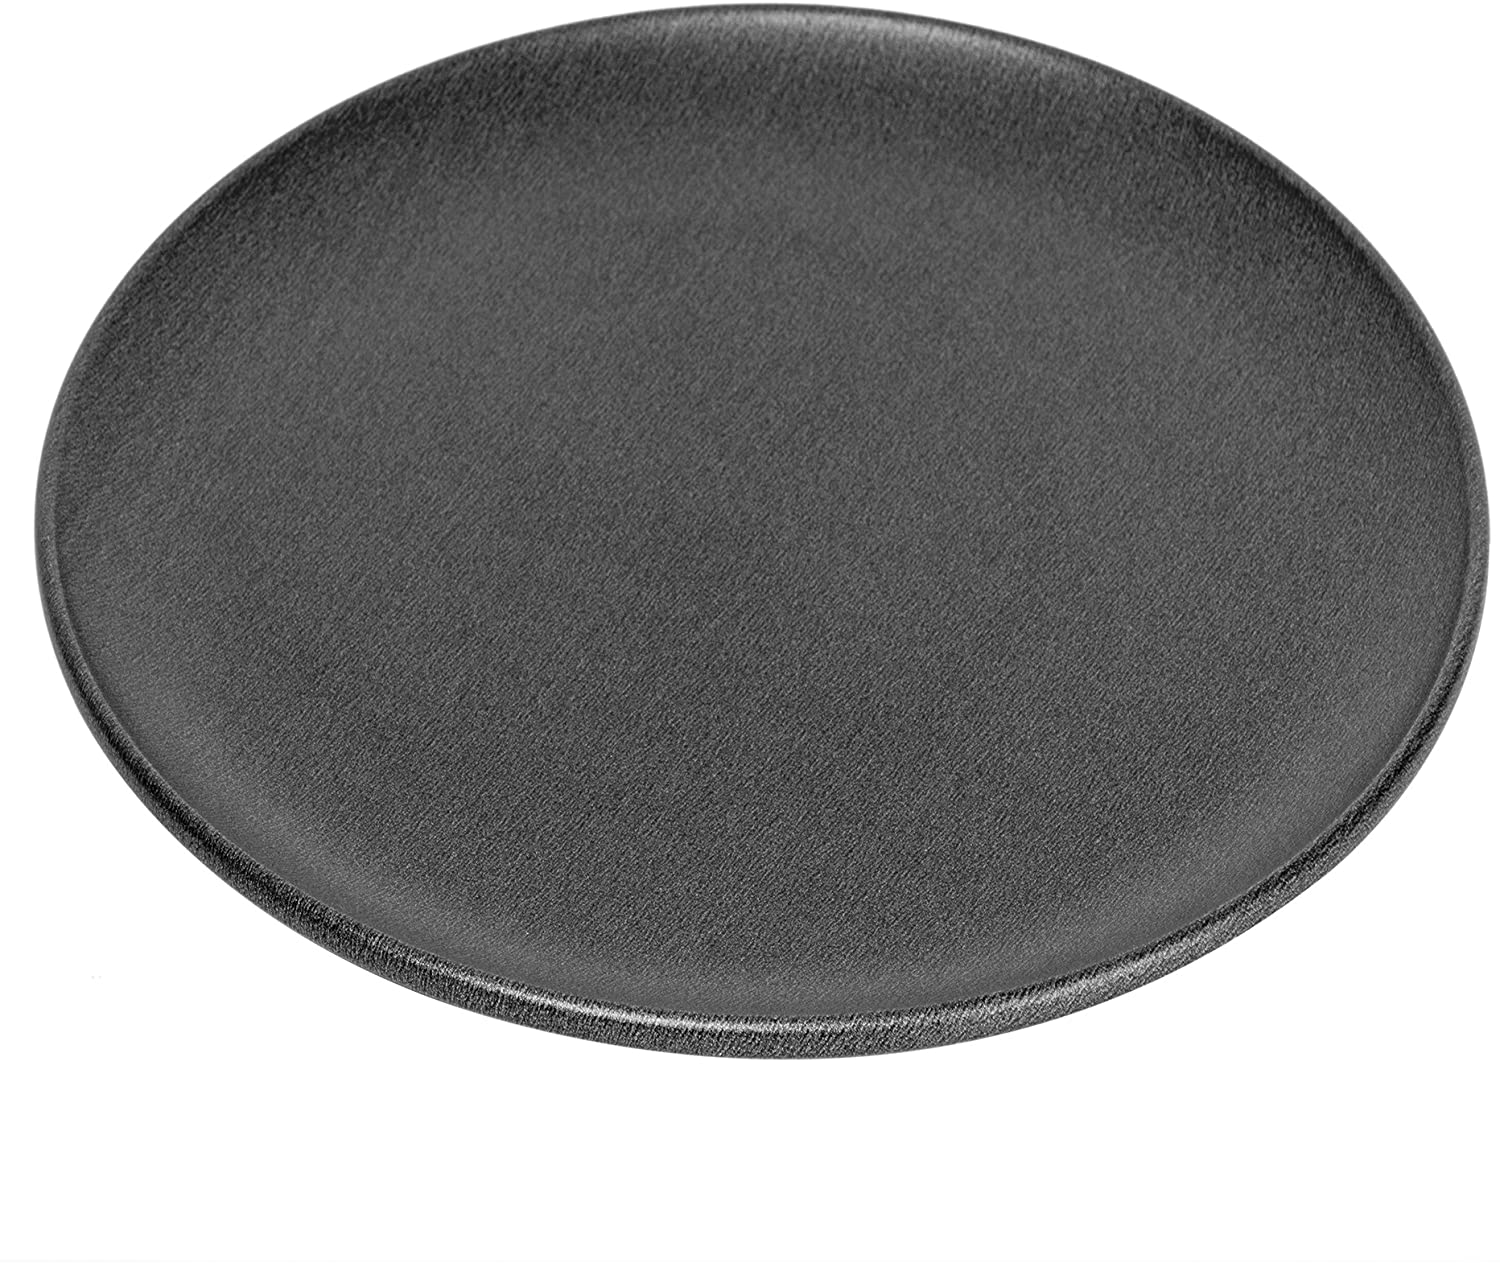 Probake teflon platinum pizza pan